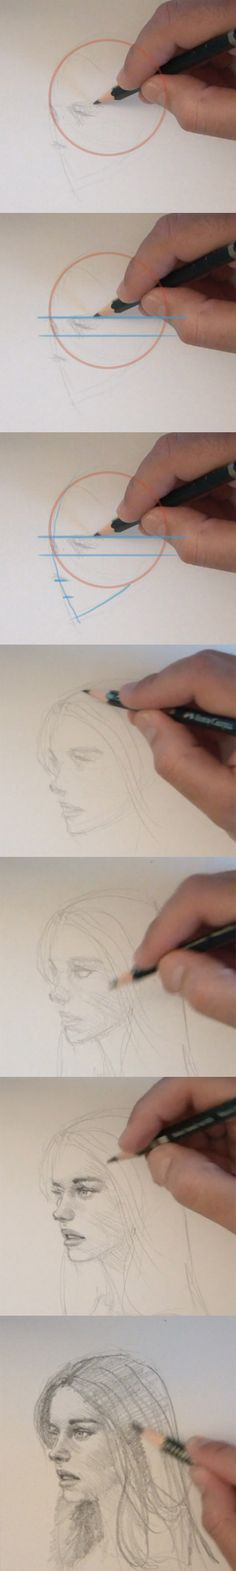 learn to draw people face. I need to brush up on my face drawings